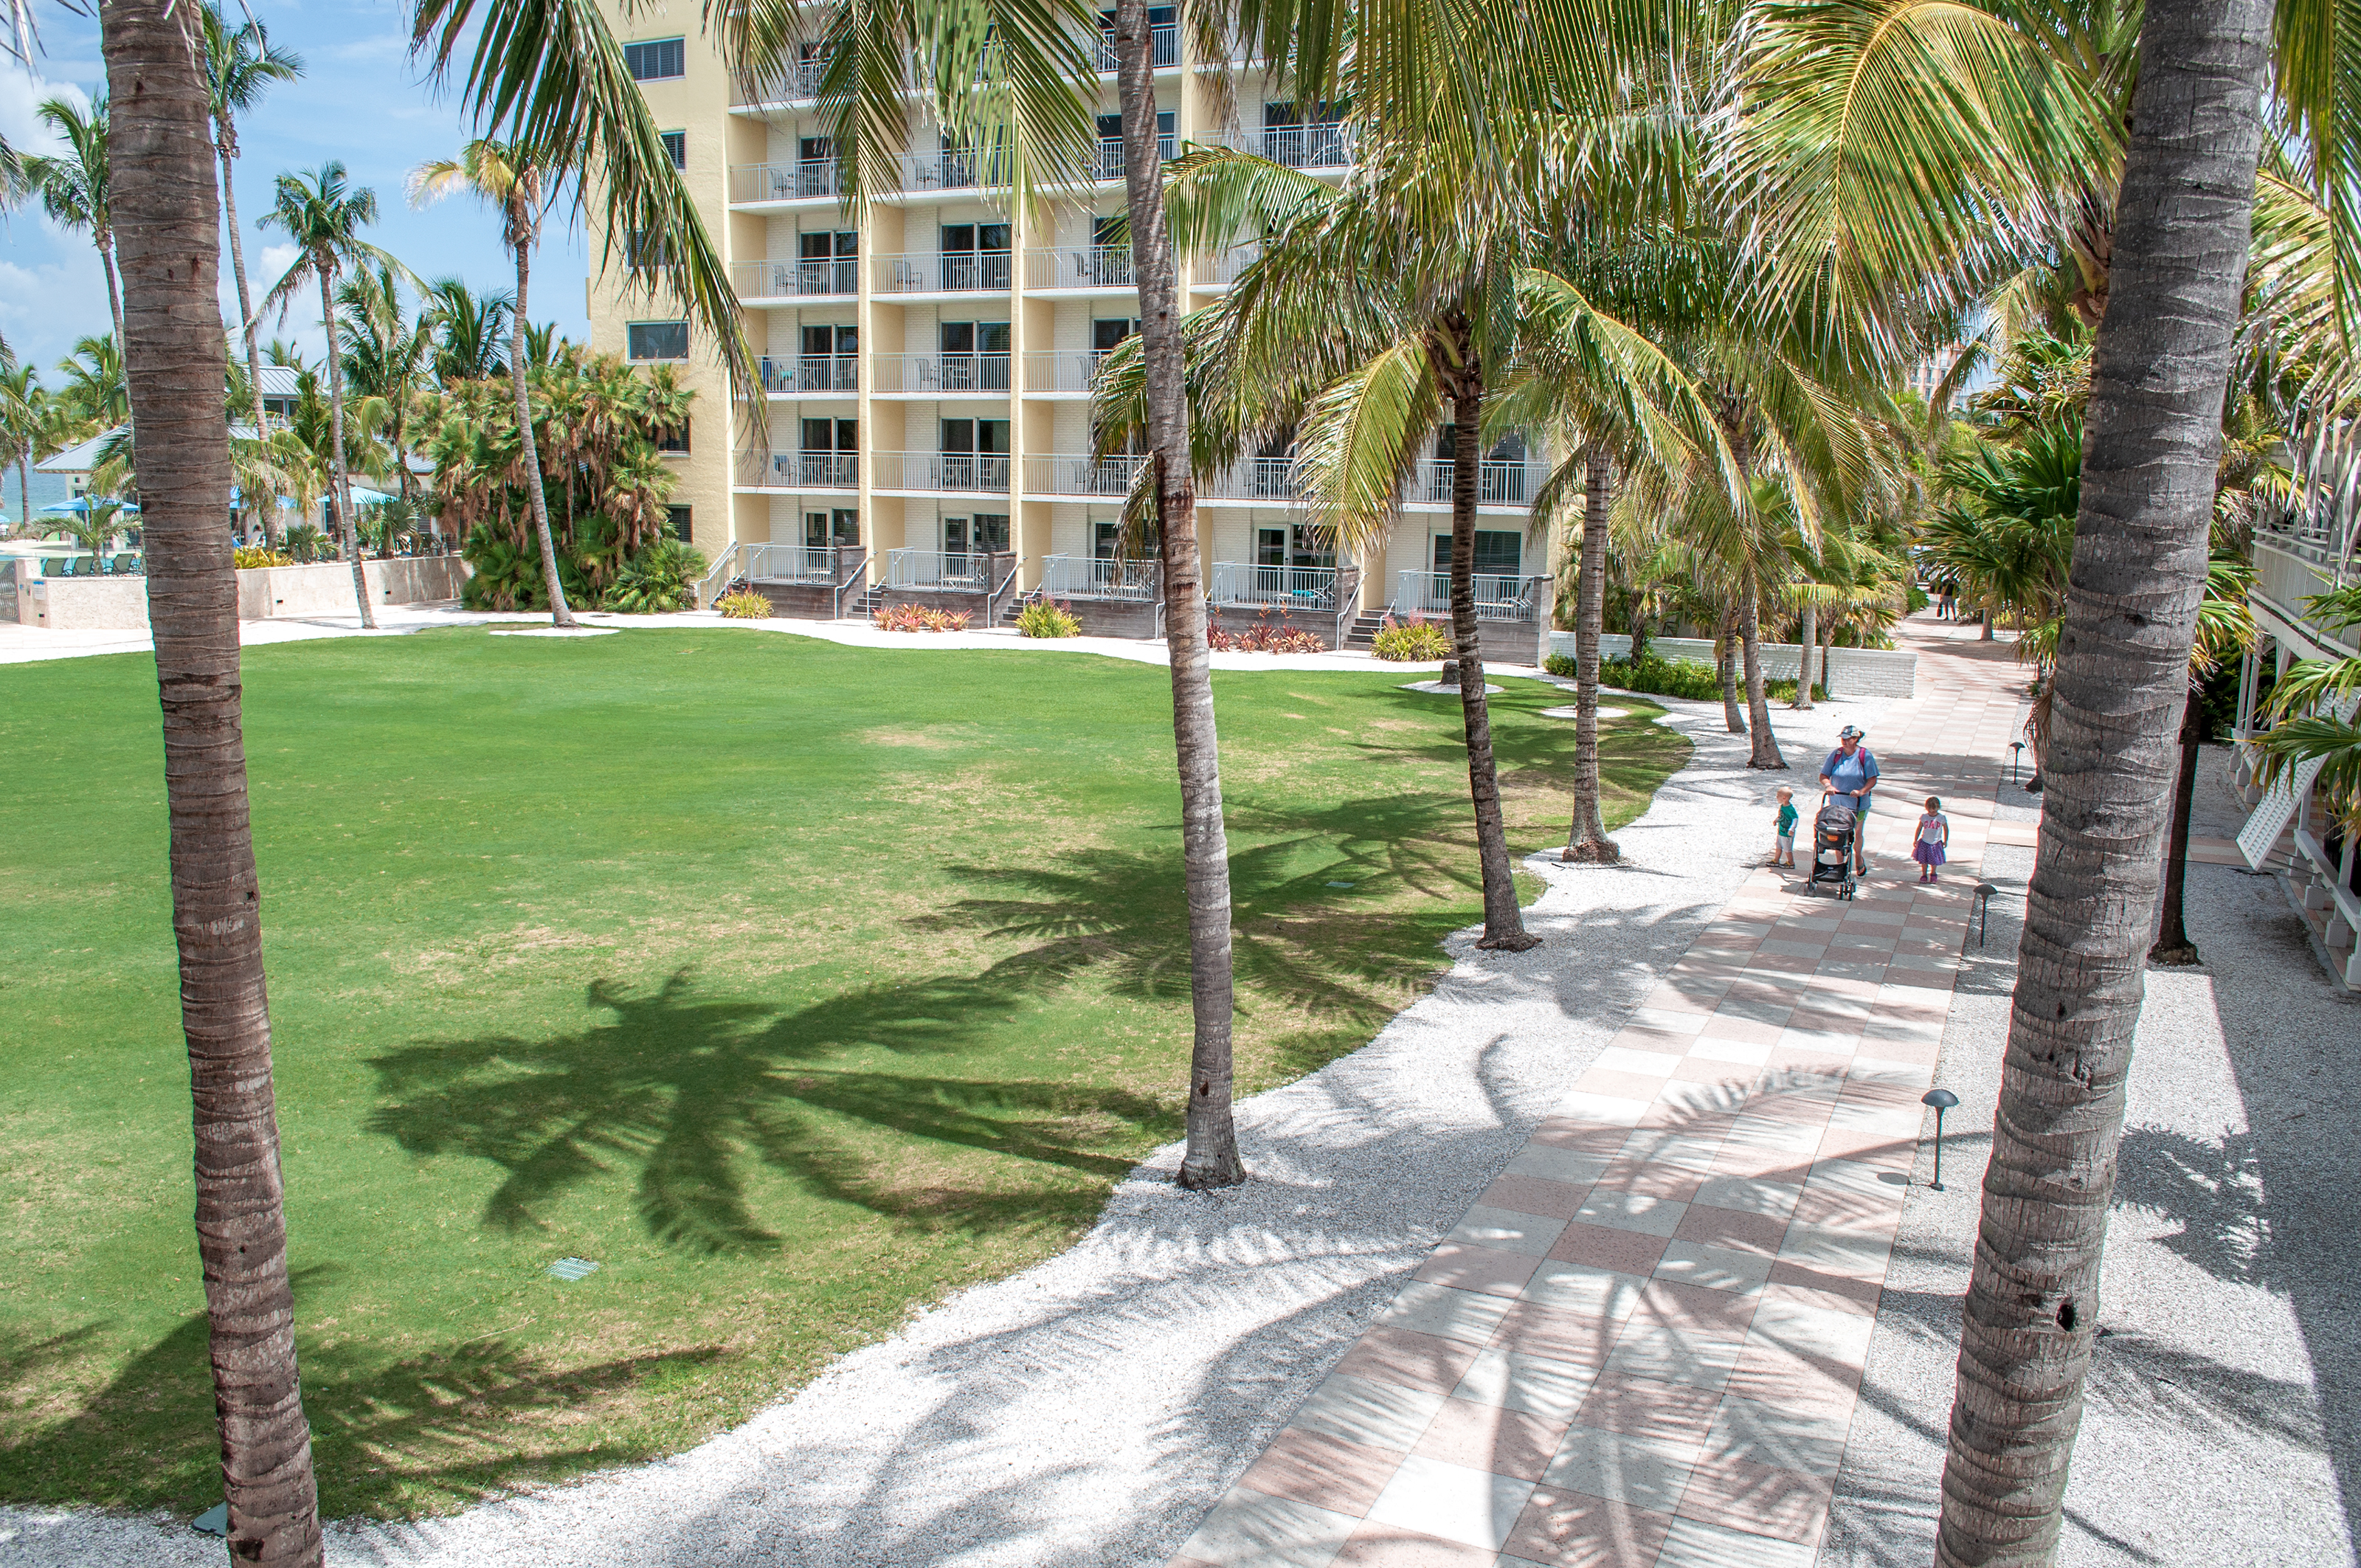 All hurricane damage at the Naples Beach Hotel had been repaired by December.